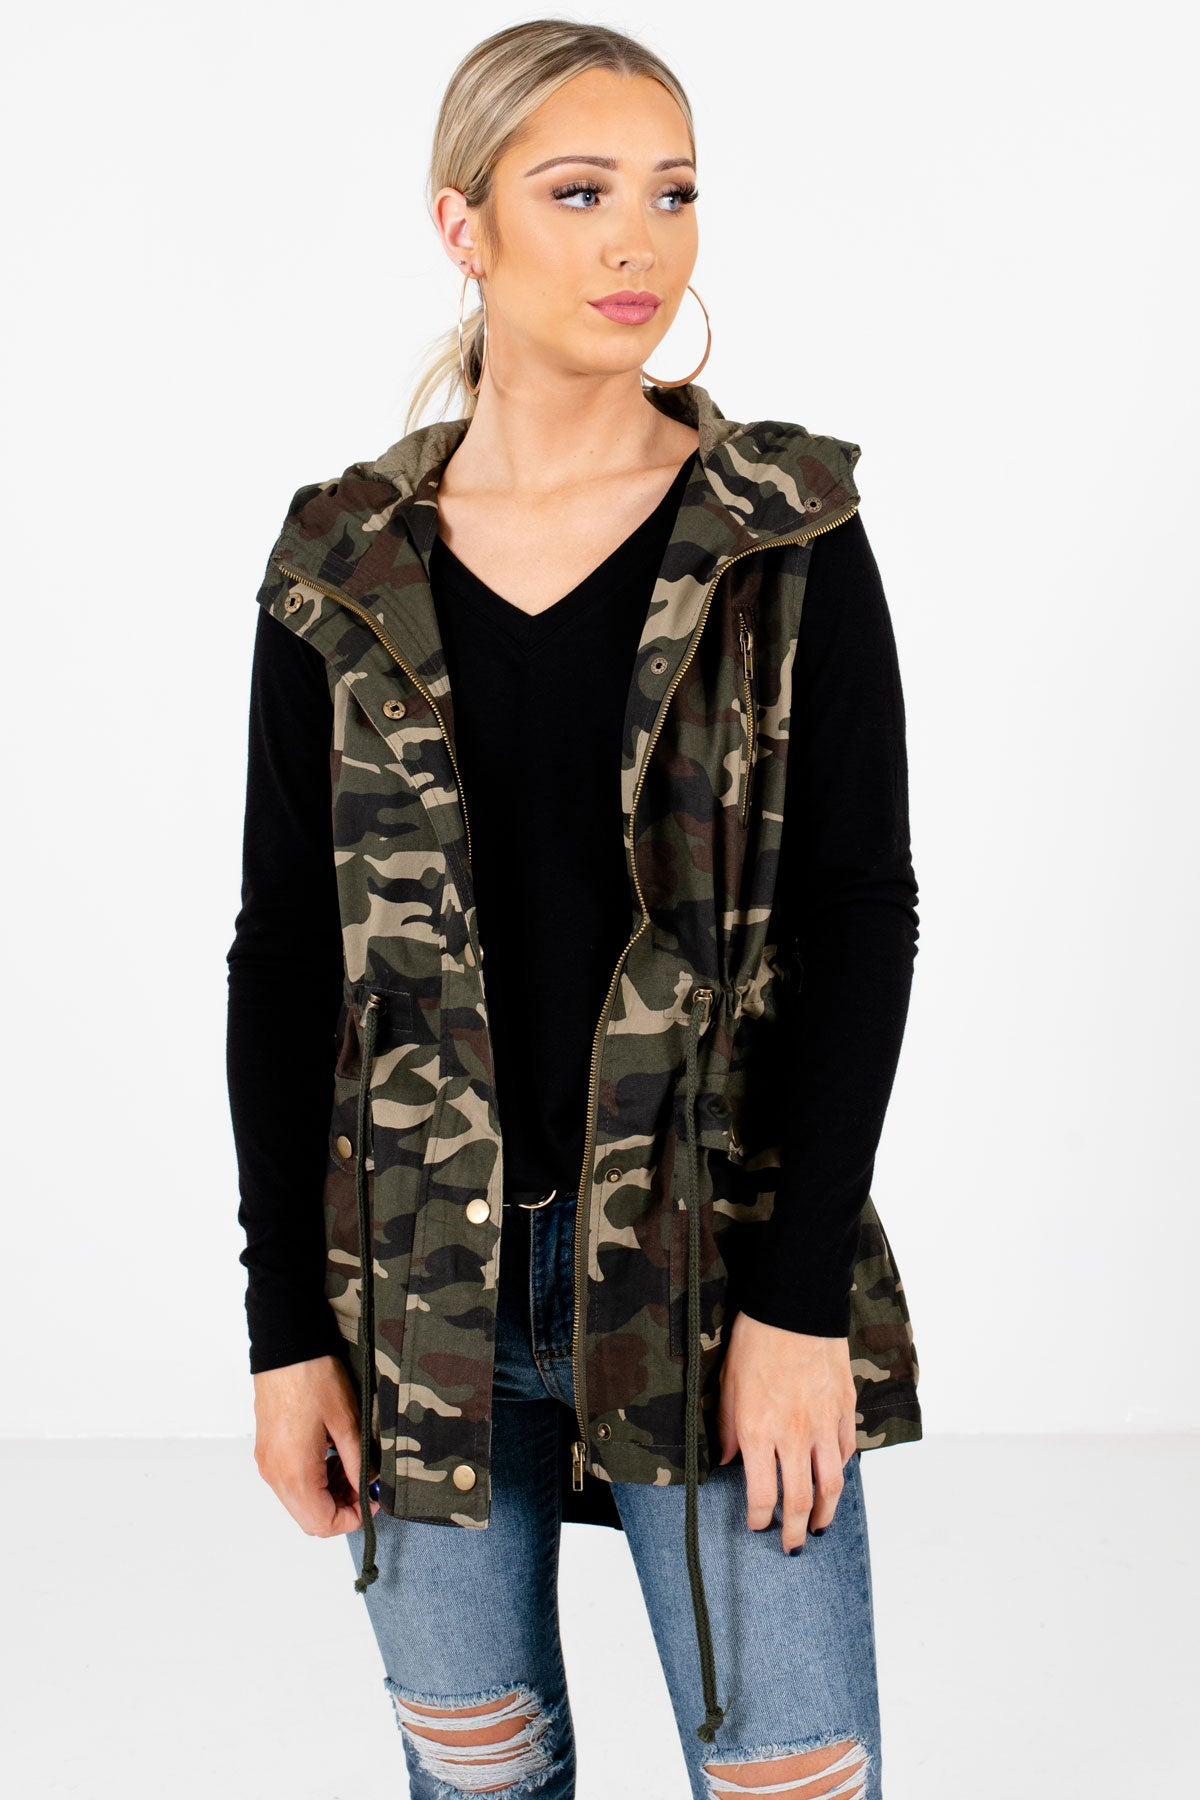 Green and Brown Camouflage Print Boutique Vests for Women